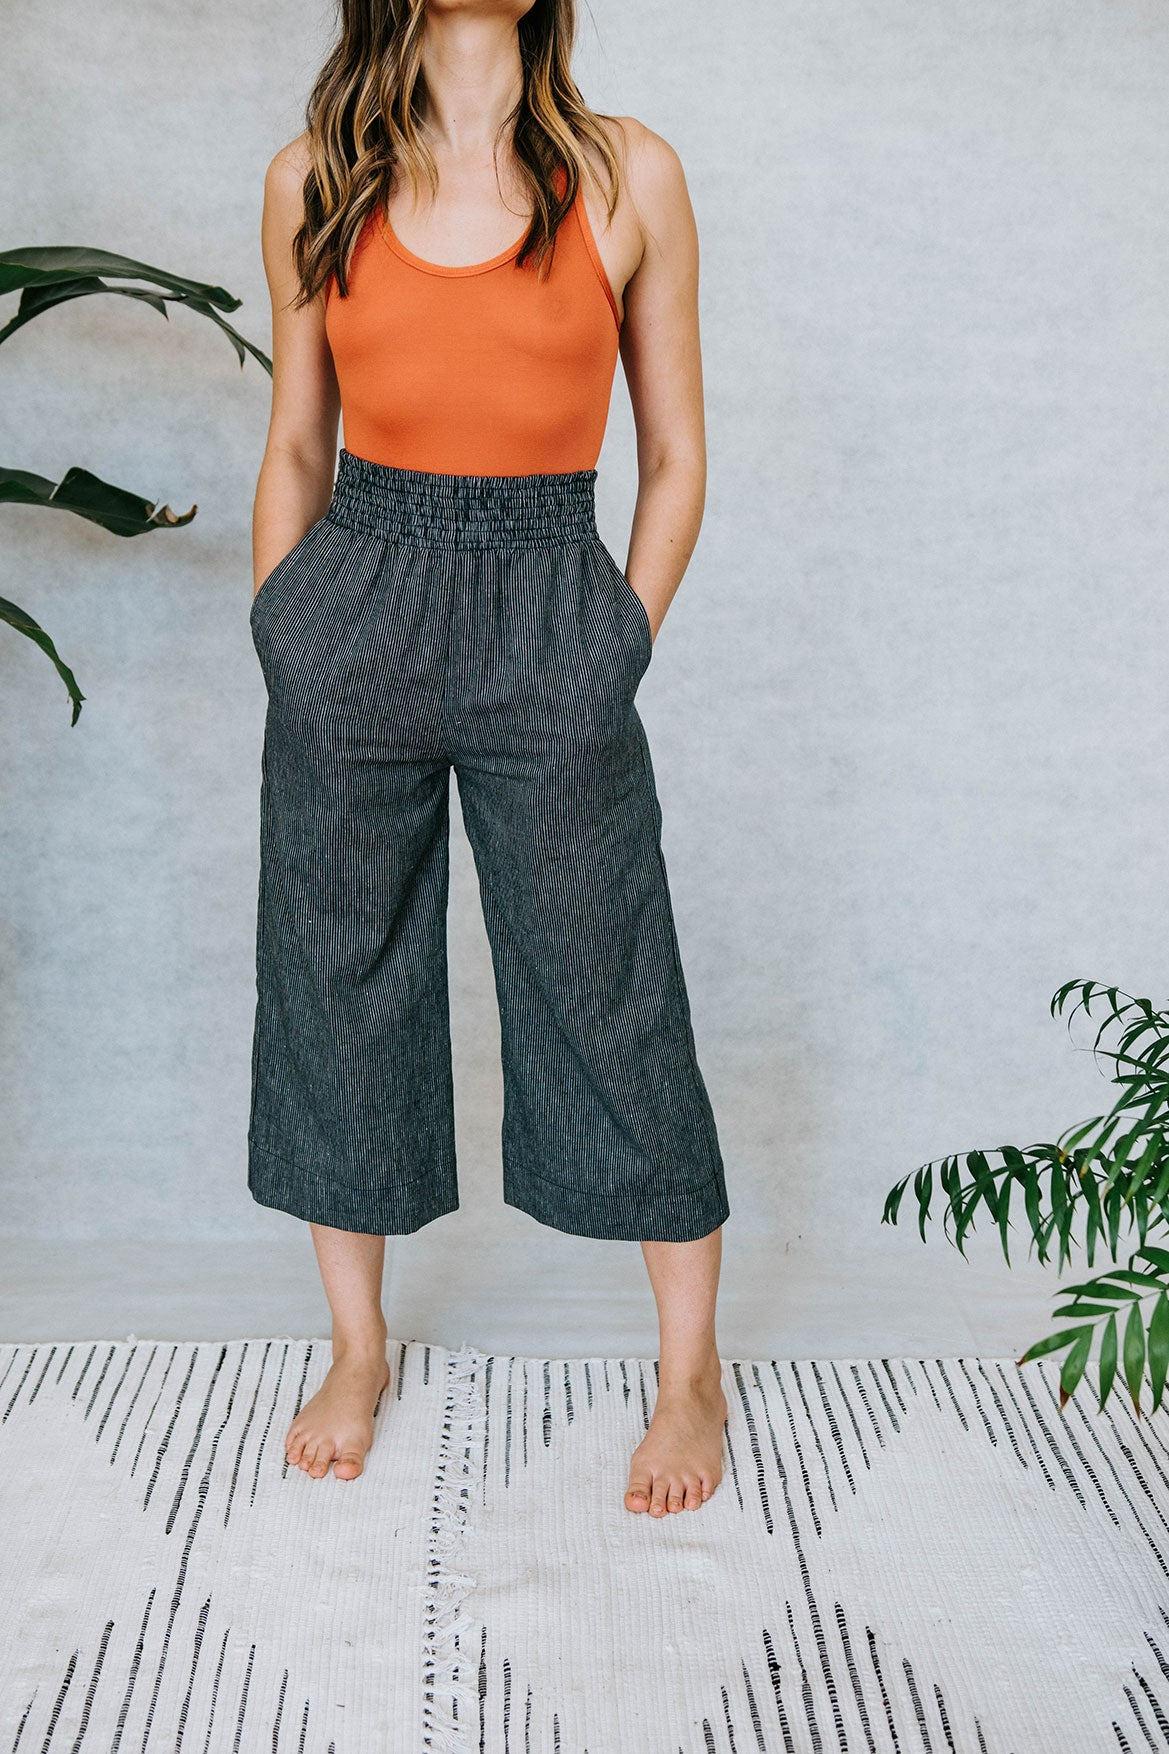 The Boxer Culotte in Hemp/Cotton